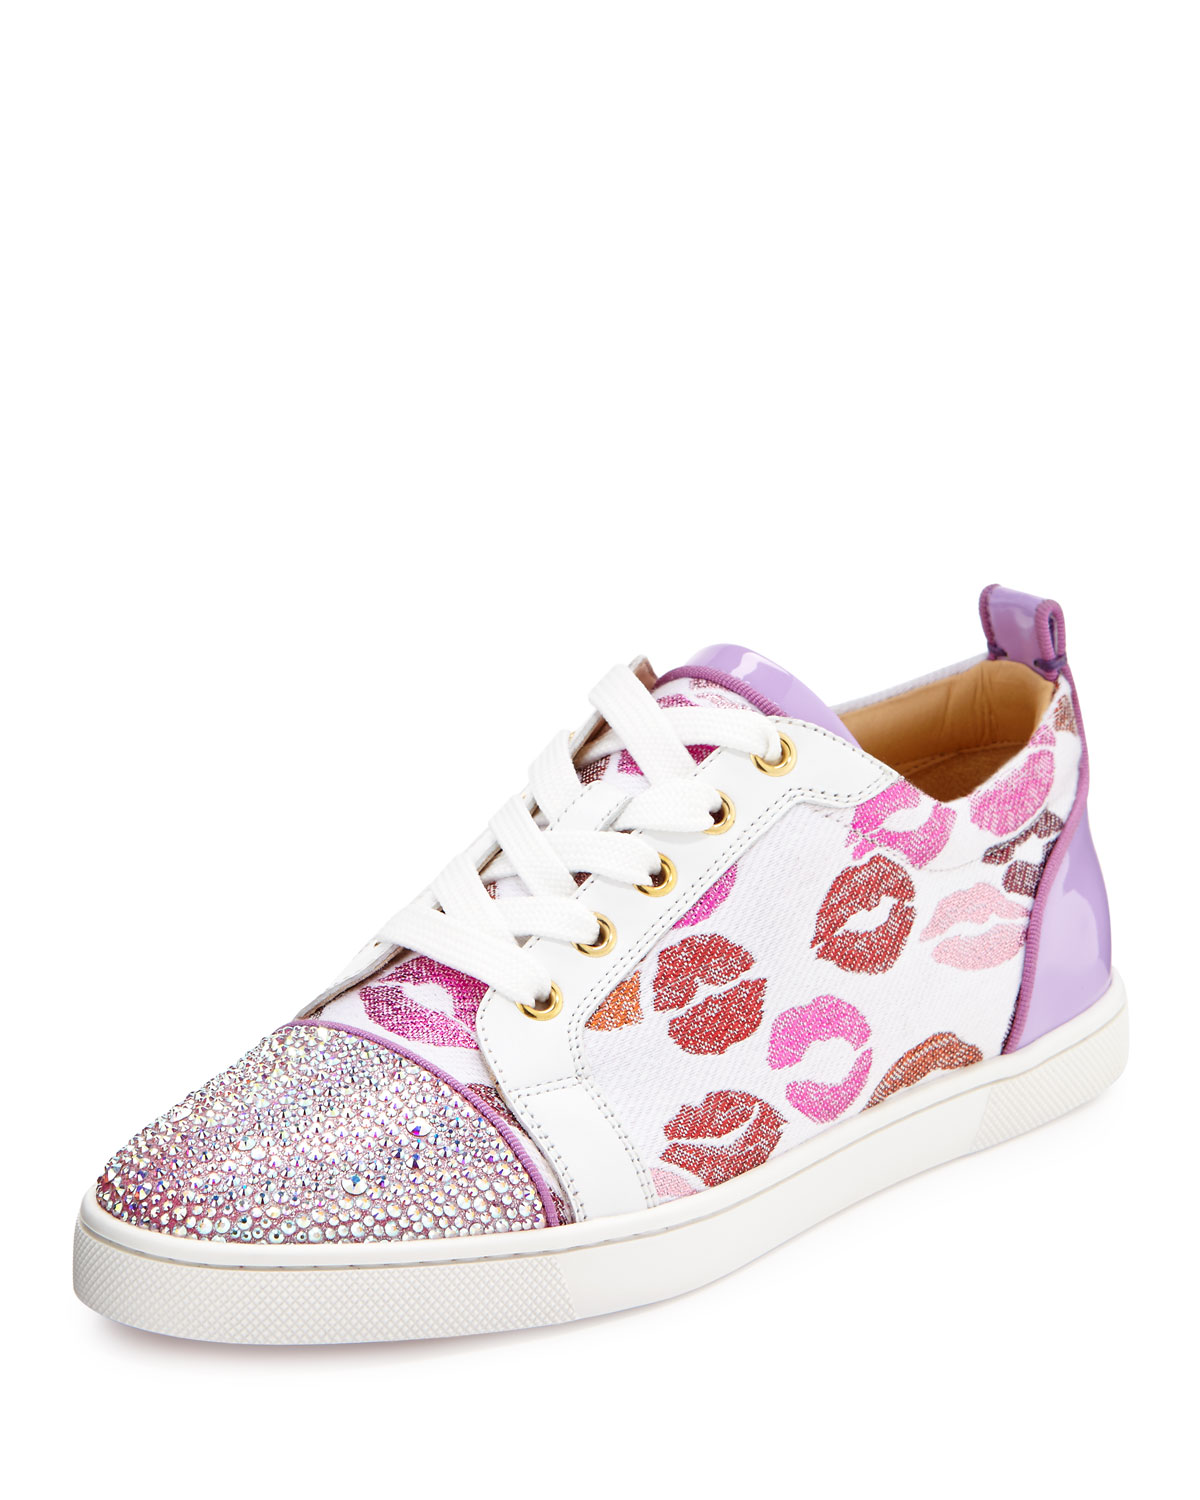 Christian Louboutin Gondolastrass Lip-Print Low-Top Sneaker ed0205608e